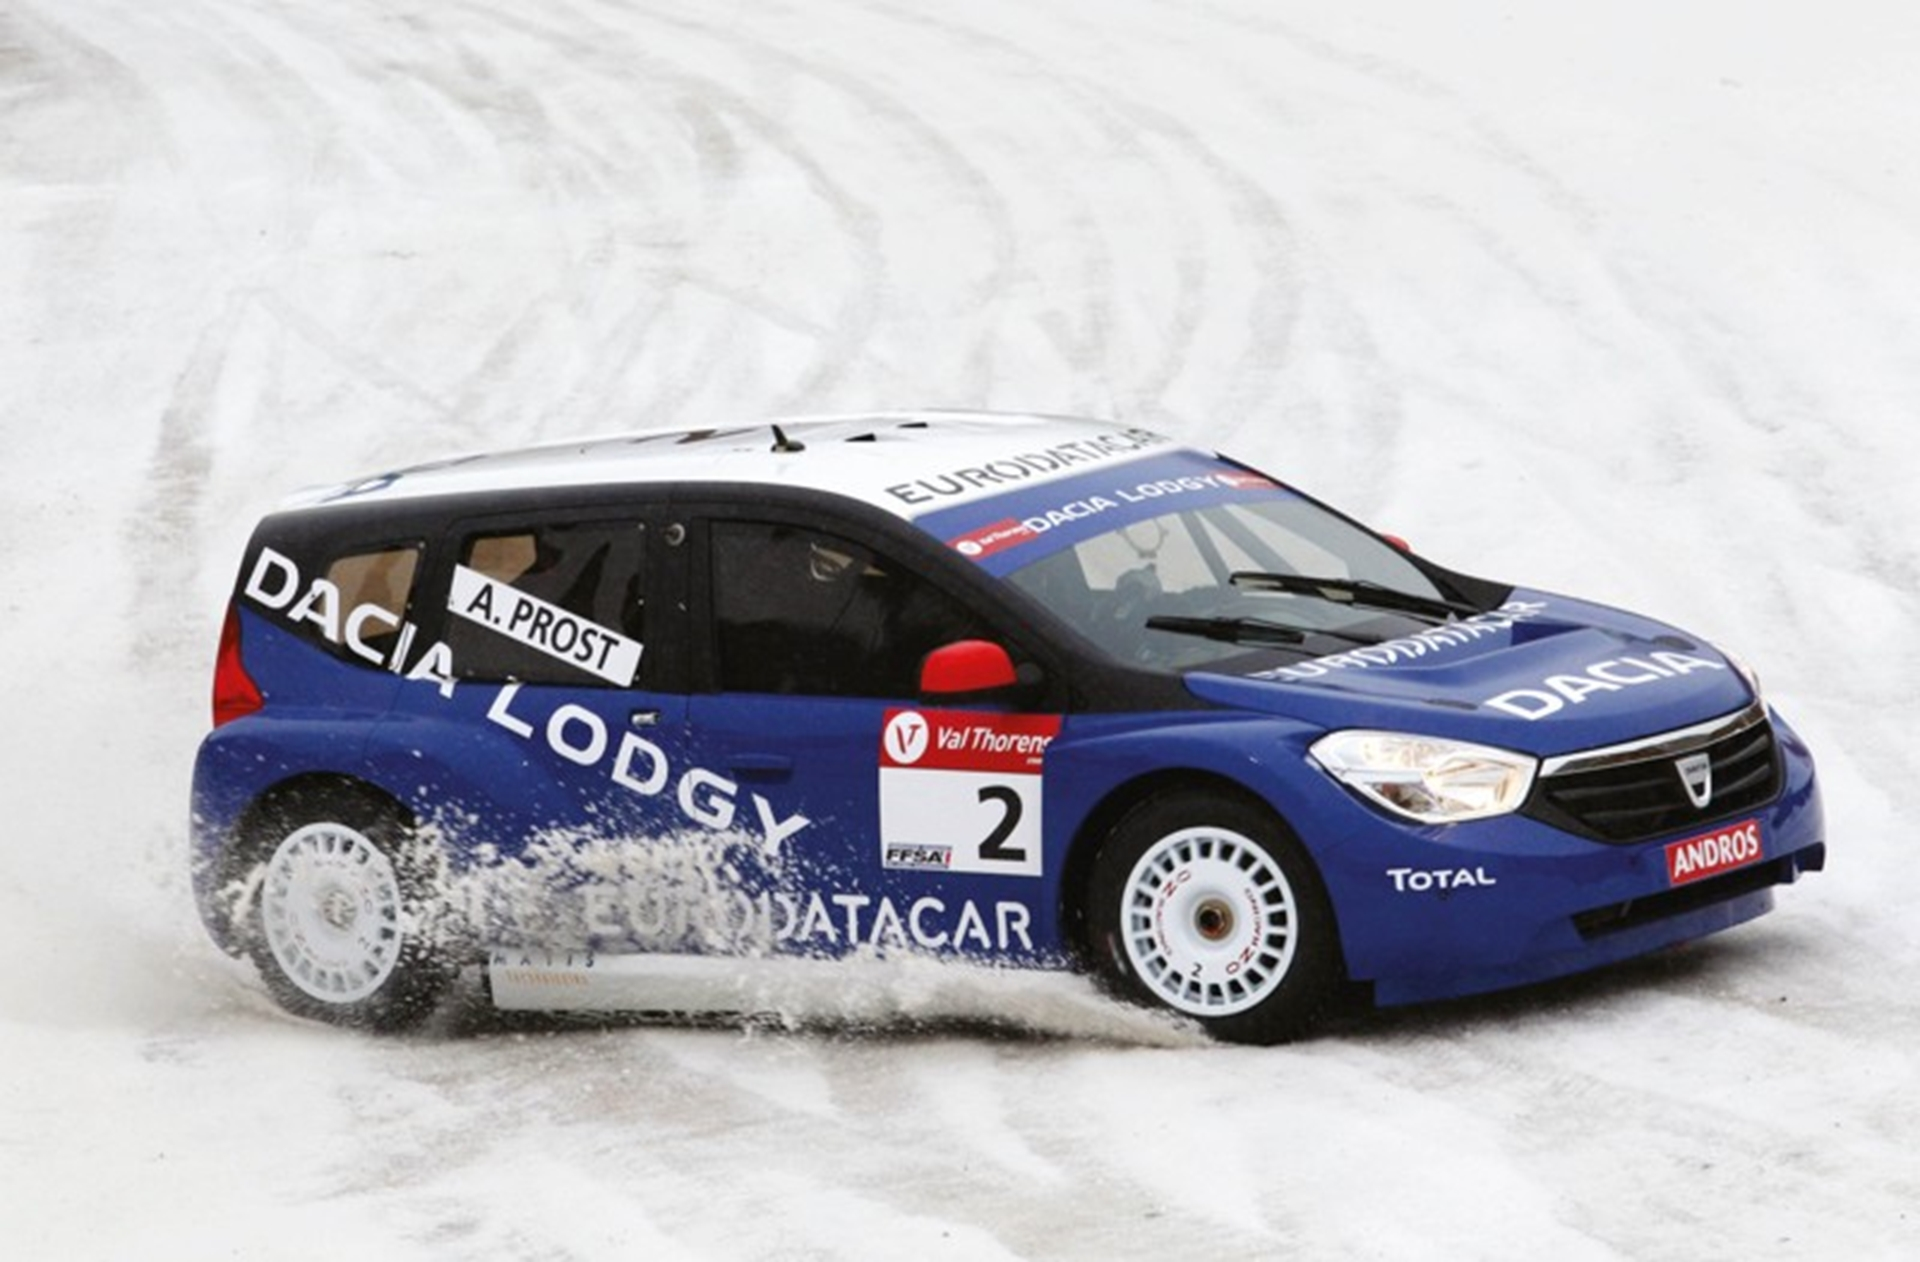 Podium success for Dacia Lodgy Glace2